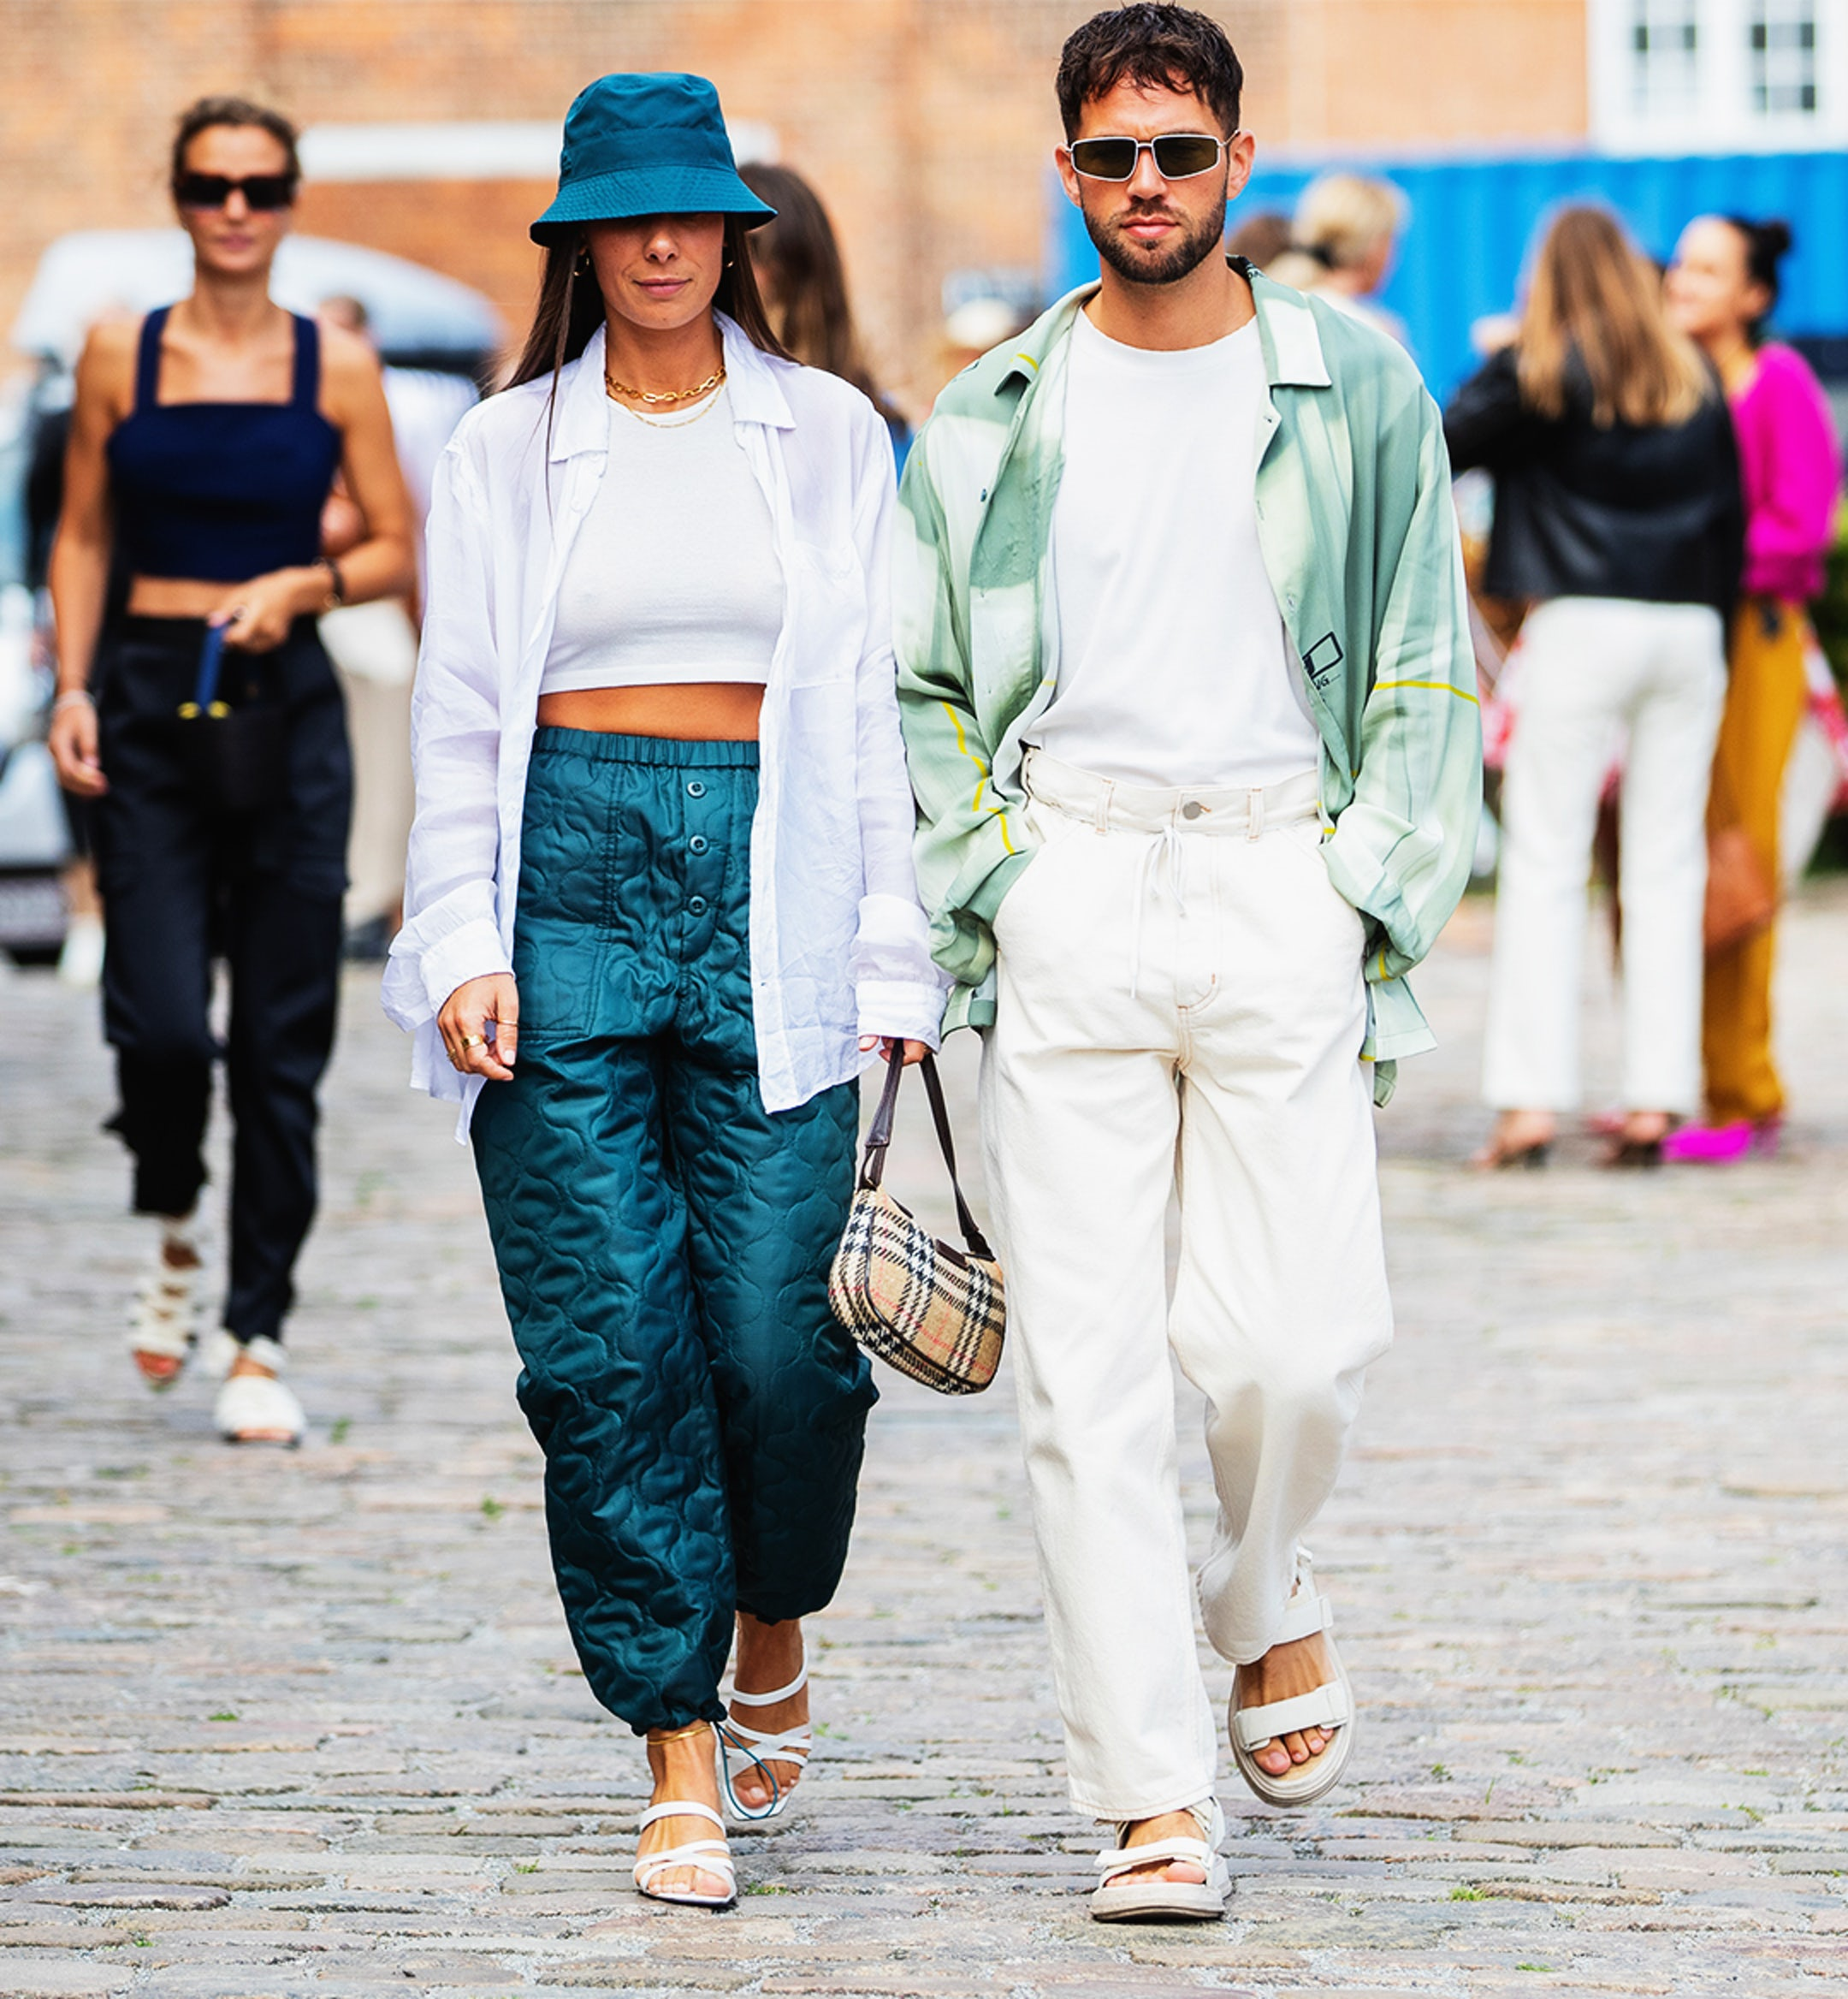 copenhagen fashion week duos mobile